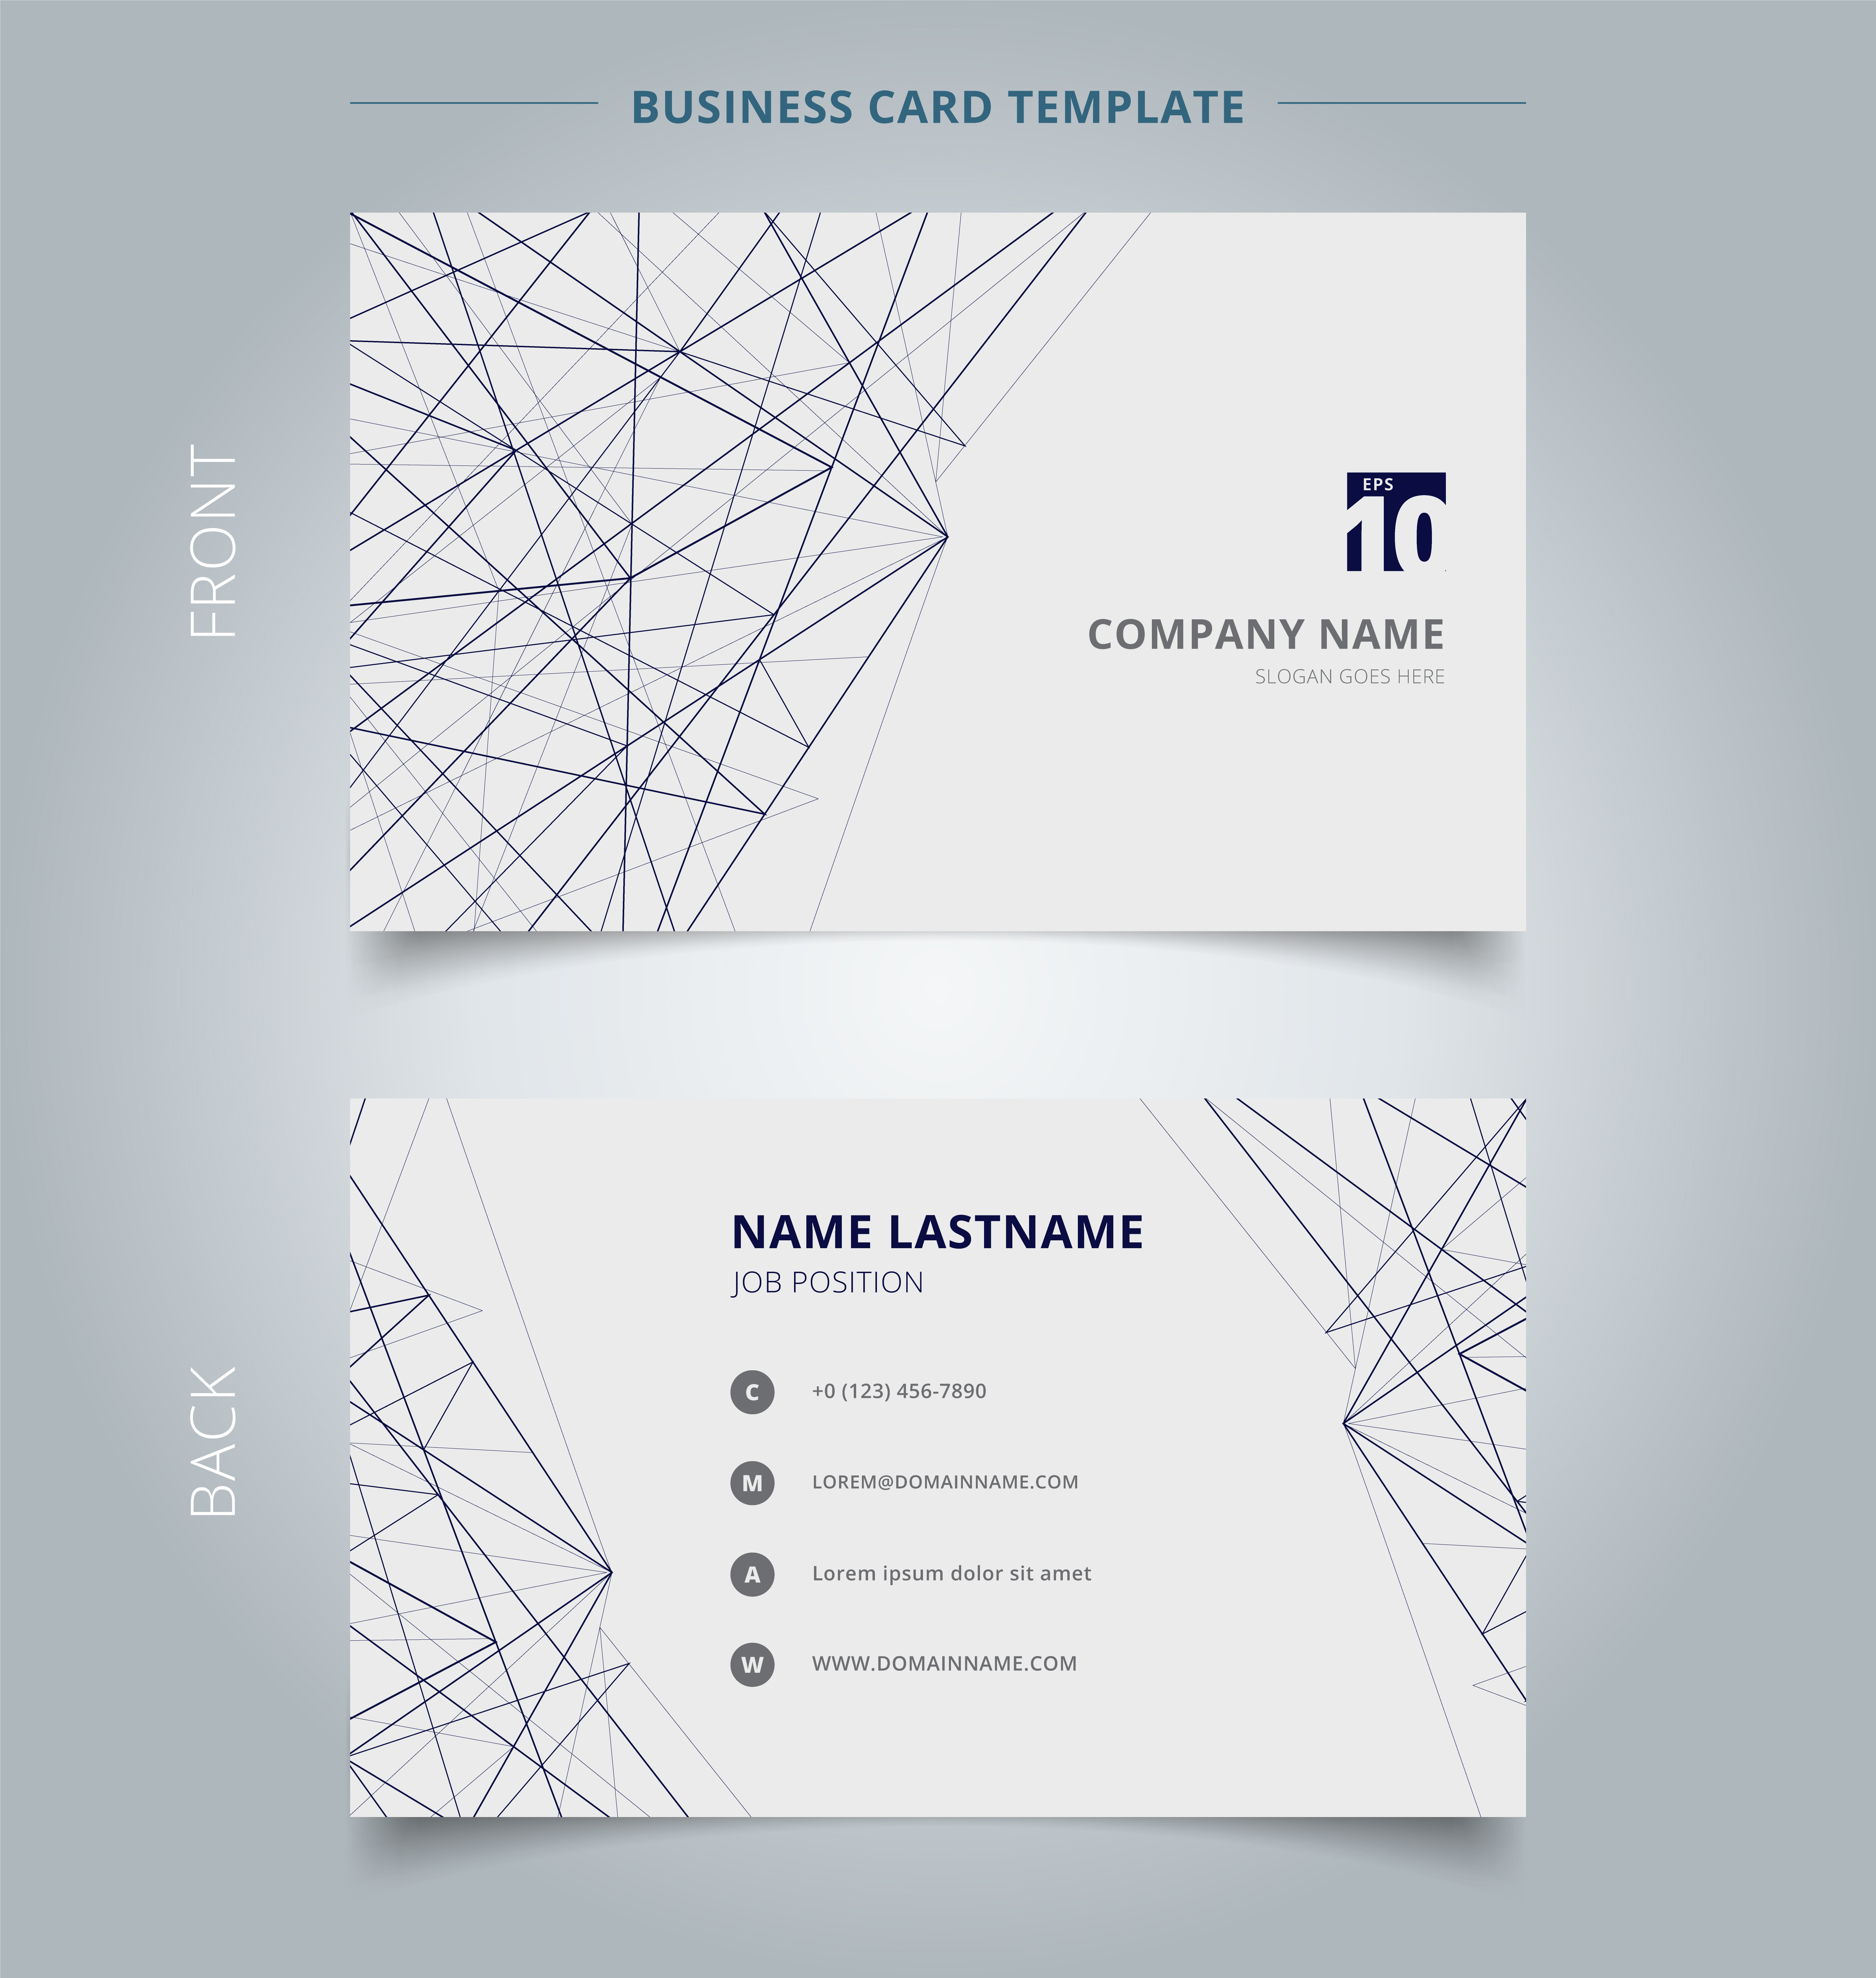 Name Card Business Template Lines Structure On White